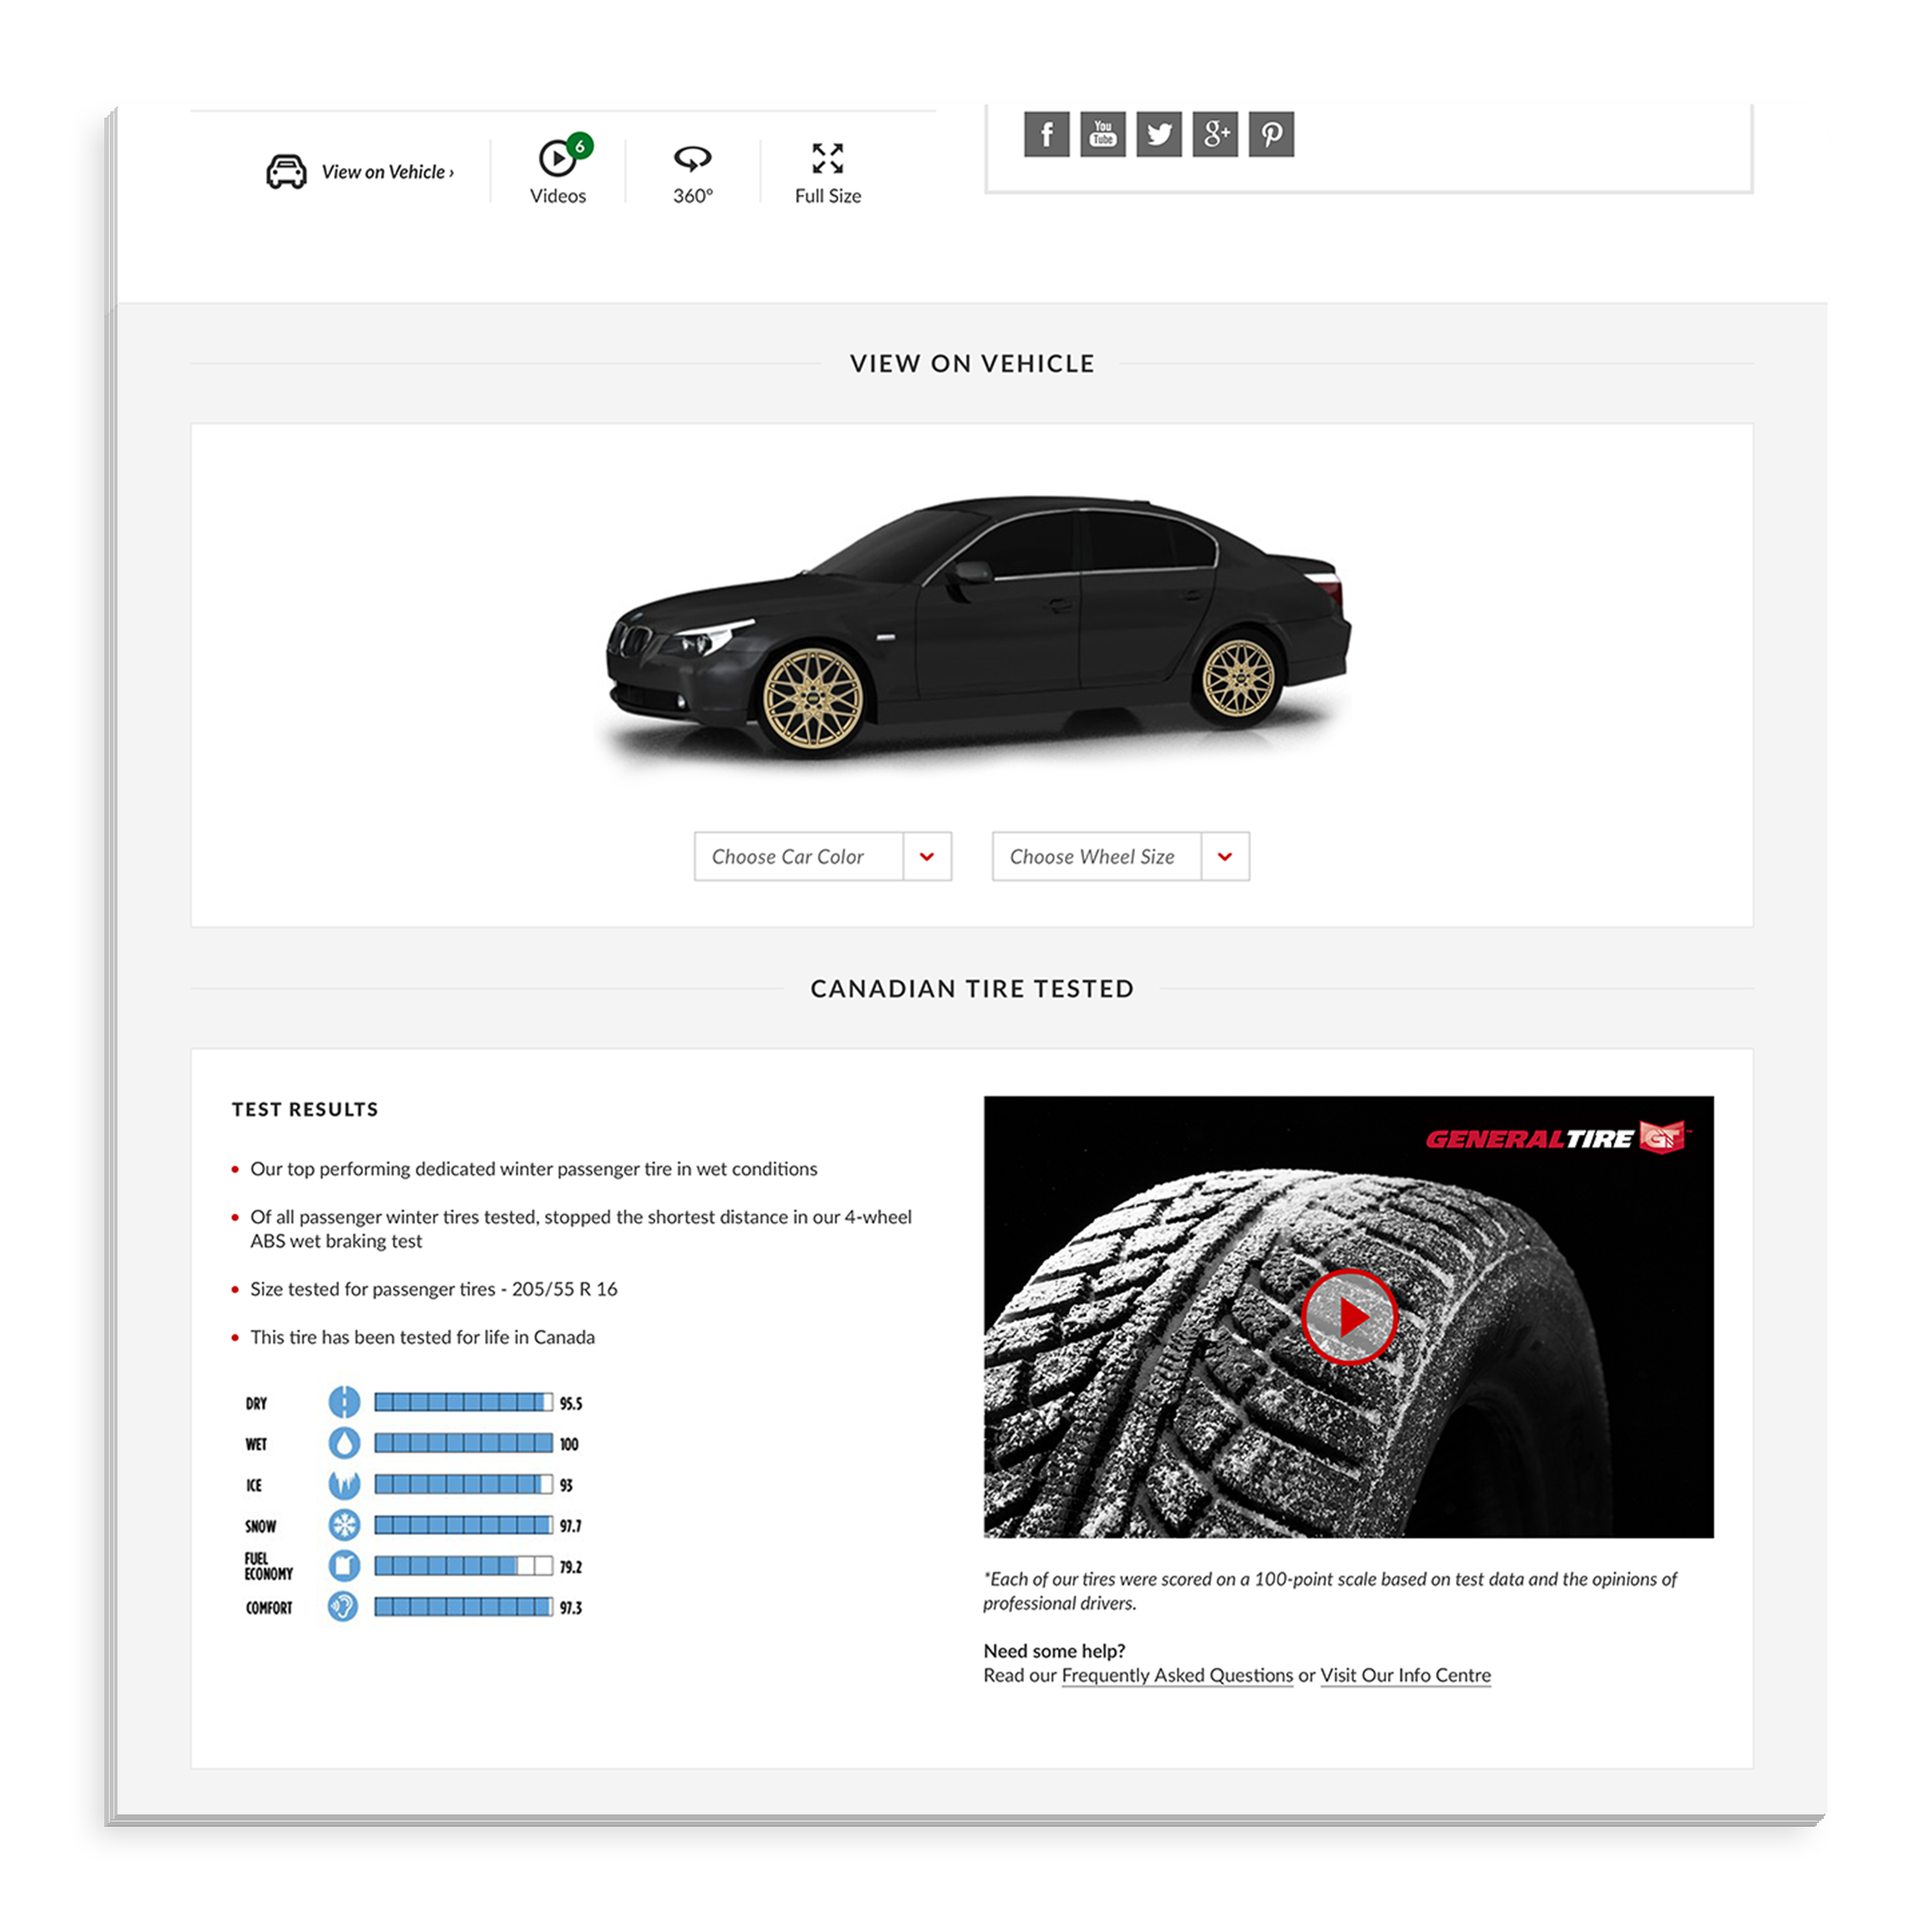 - The view on vehicle tool will access users' saved vehicles and automatically display the desired product on the default vehicle. Below they can see the full product specs based on tests conducted by a Canadian Tire expert.